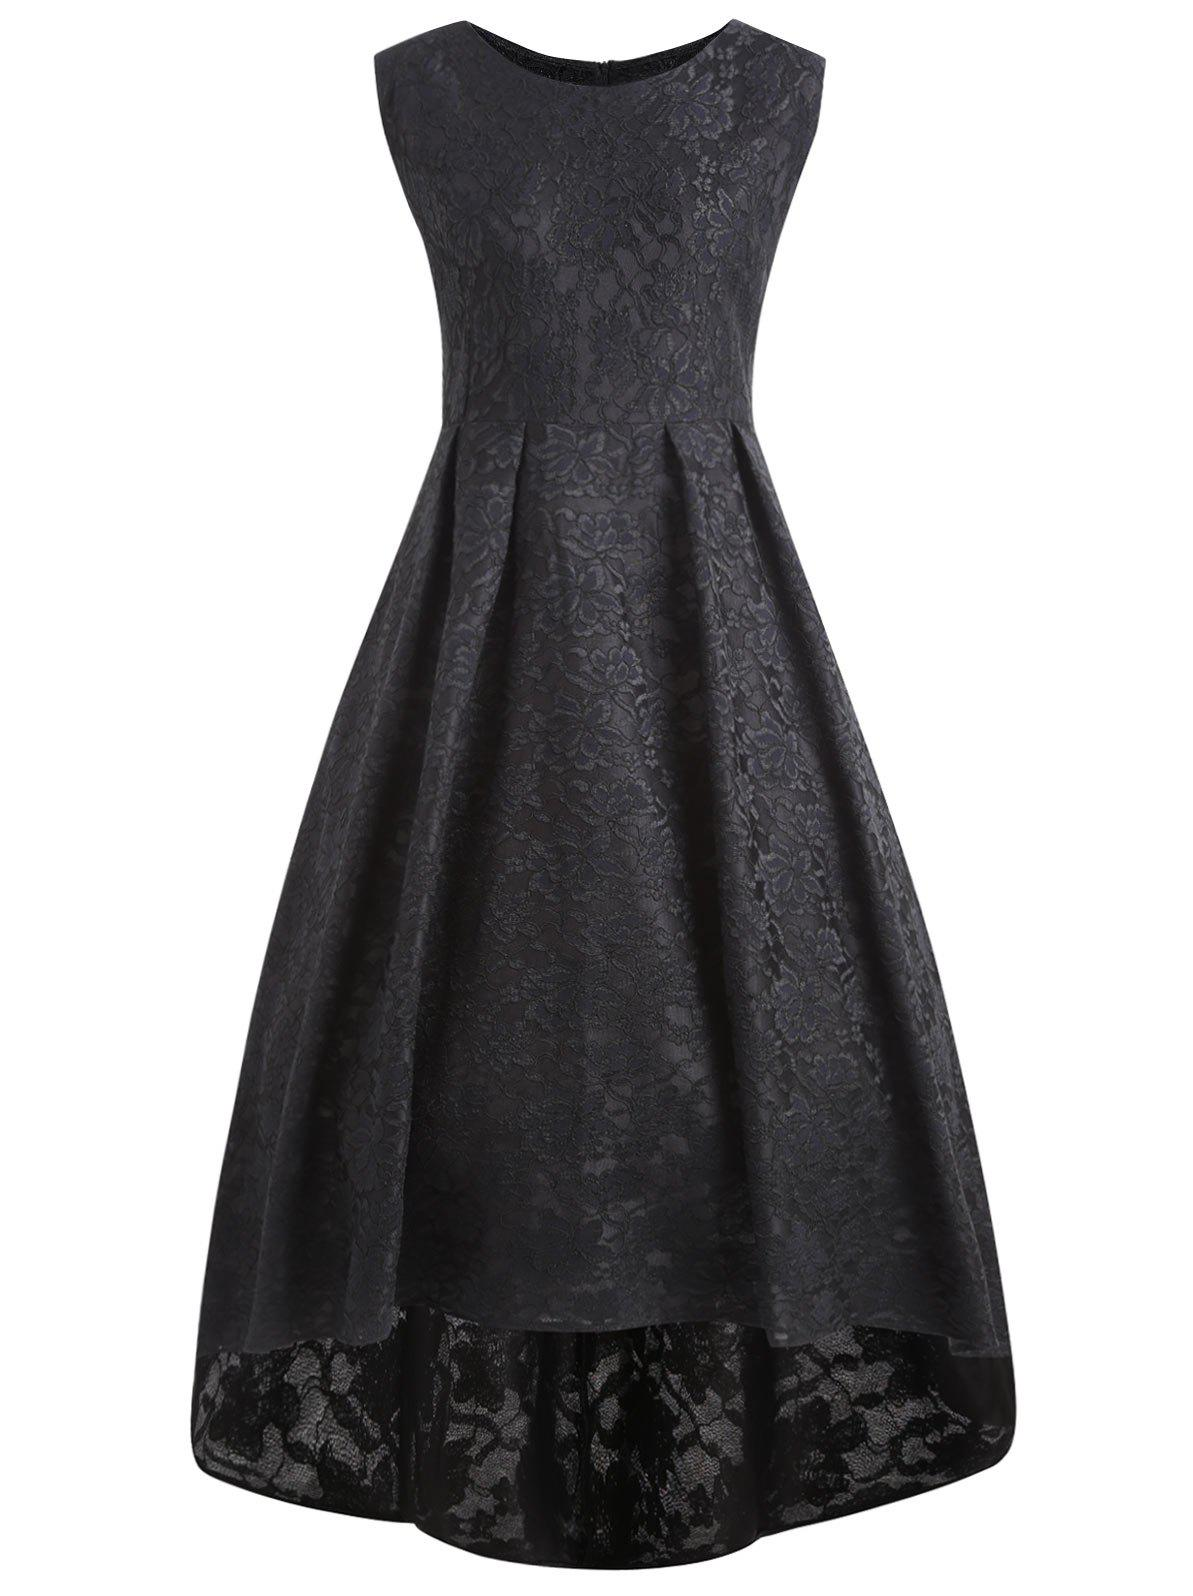 Plus Size High Low Lace Midi Vintage DressWOMEN<br><br>Size: 2XL; Color: BLACK; Style: Vintage; Material: Cotton Blend,Polyester; Silhouette: Ball Gown; Dresses Length: Mid-Calf; Neckline: Round Collar; Sleeve Length: Sleeveless; Waist: High Waisted; Pattern Type: Solid Color; With Belt: No; Season: Fall,Winter; Weight: 0.7000kg; Package Contents: 1 x Dress;